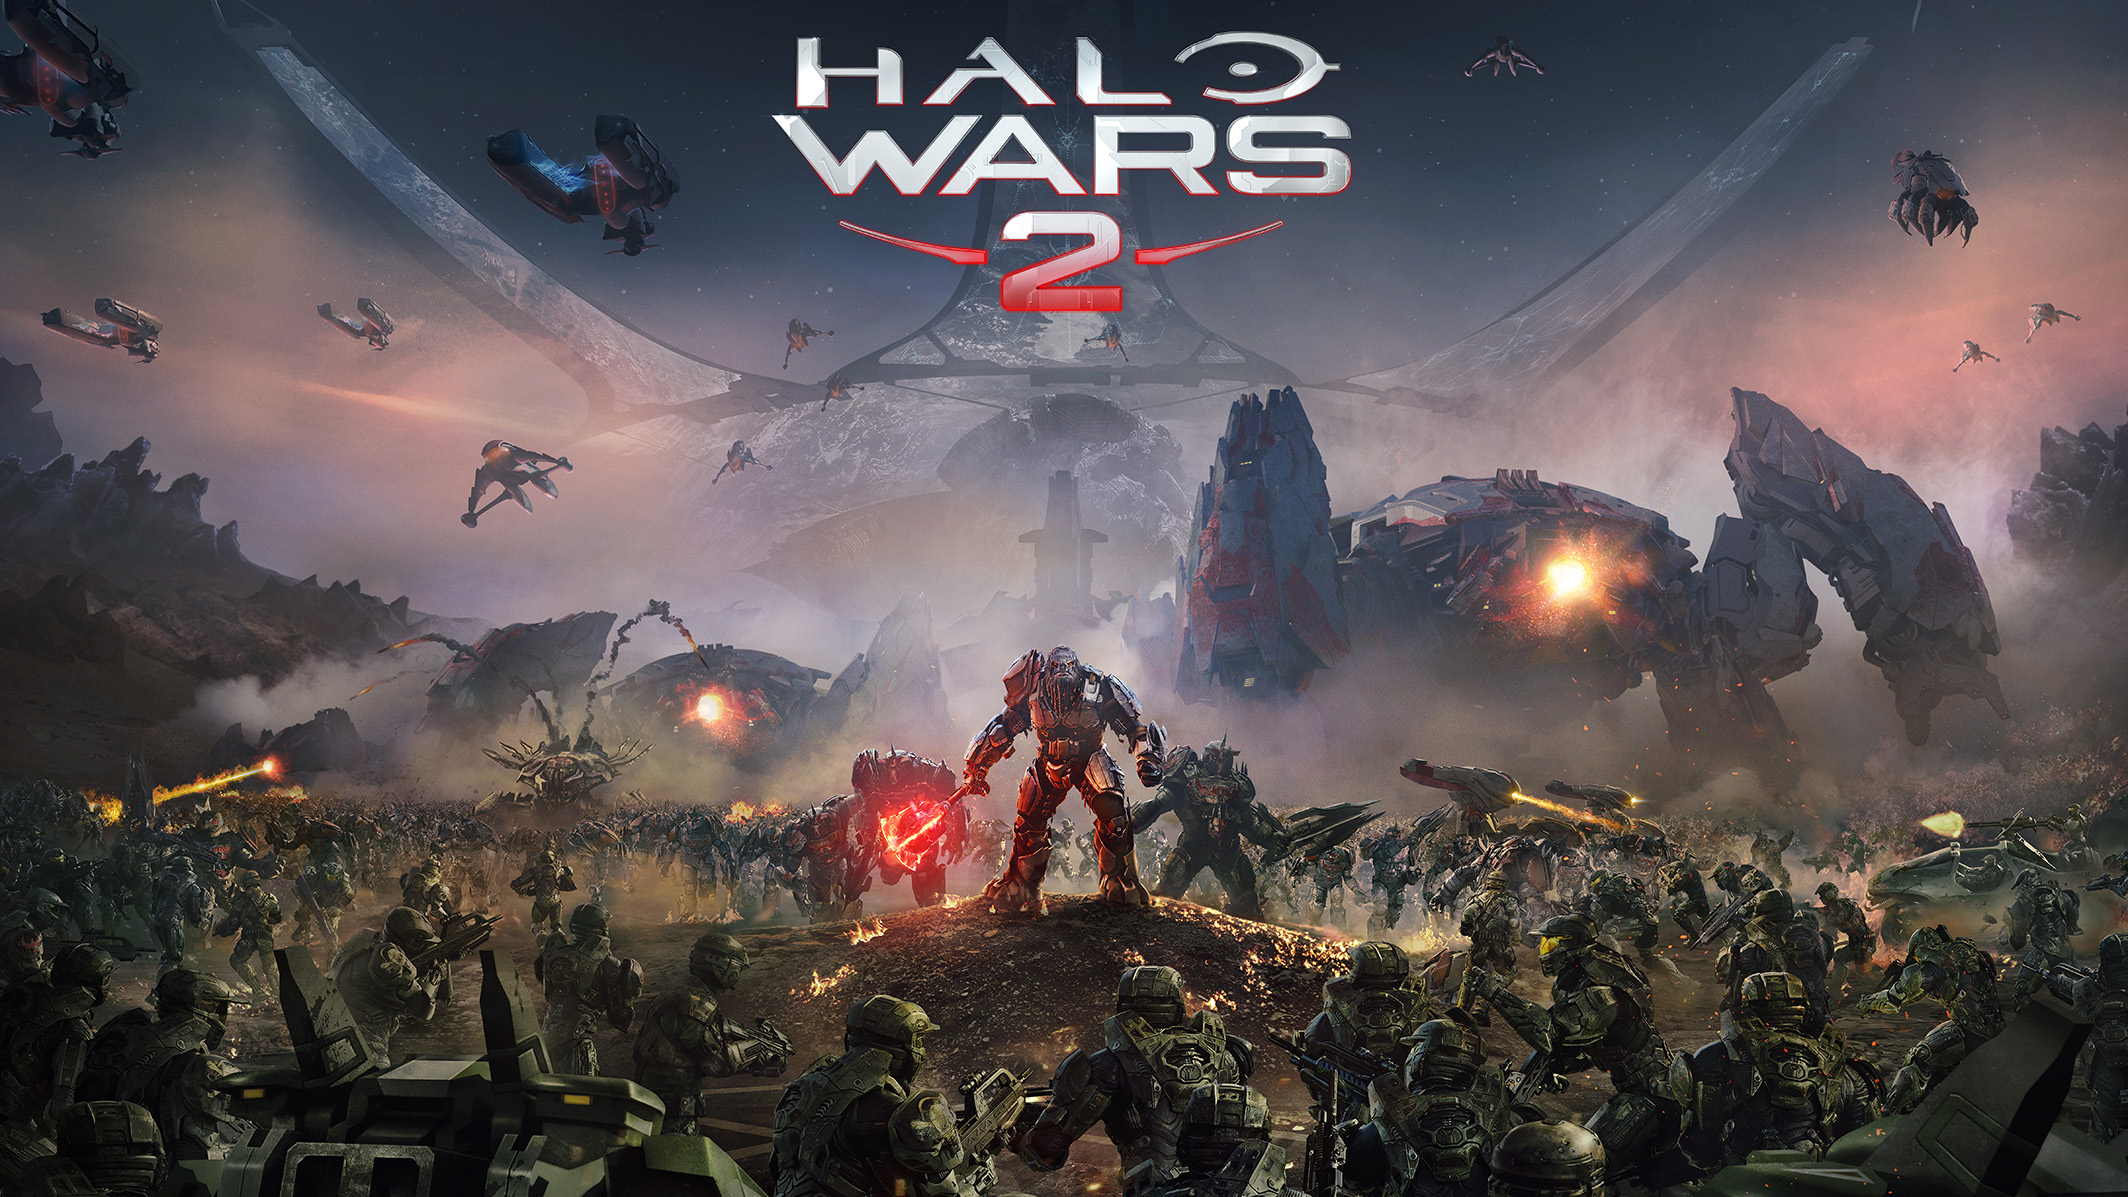 Campaign Cutscene for Halo Wars 2 Revealed